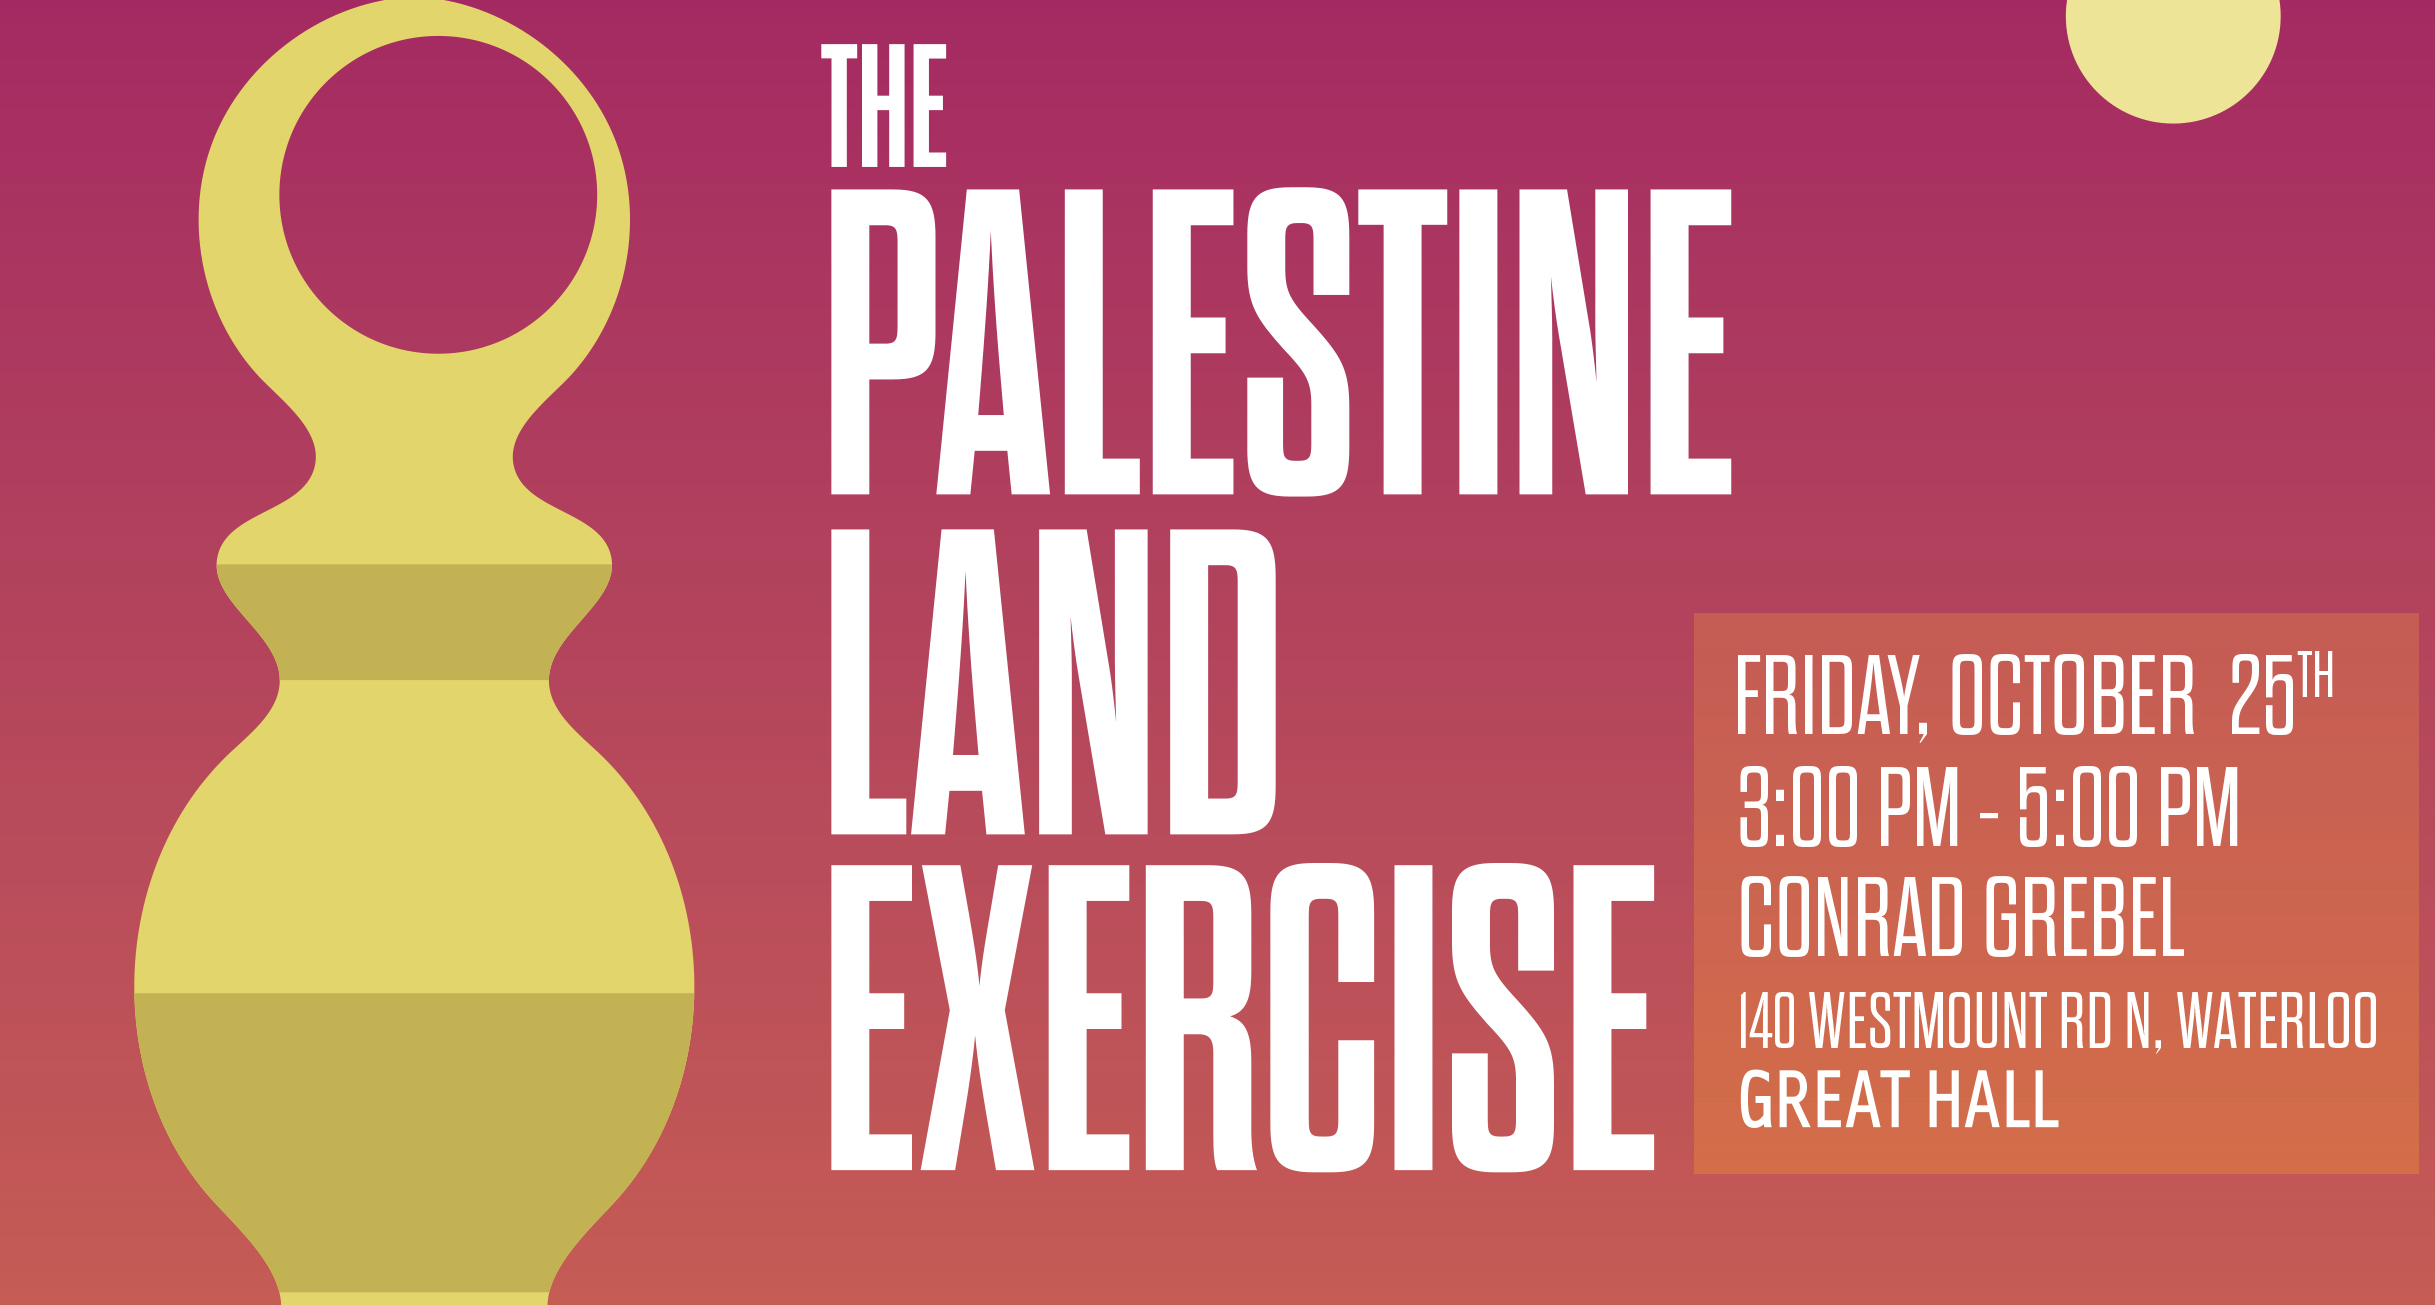 The Palestine Land Exercise